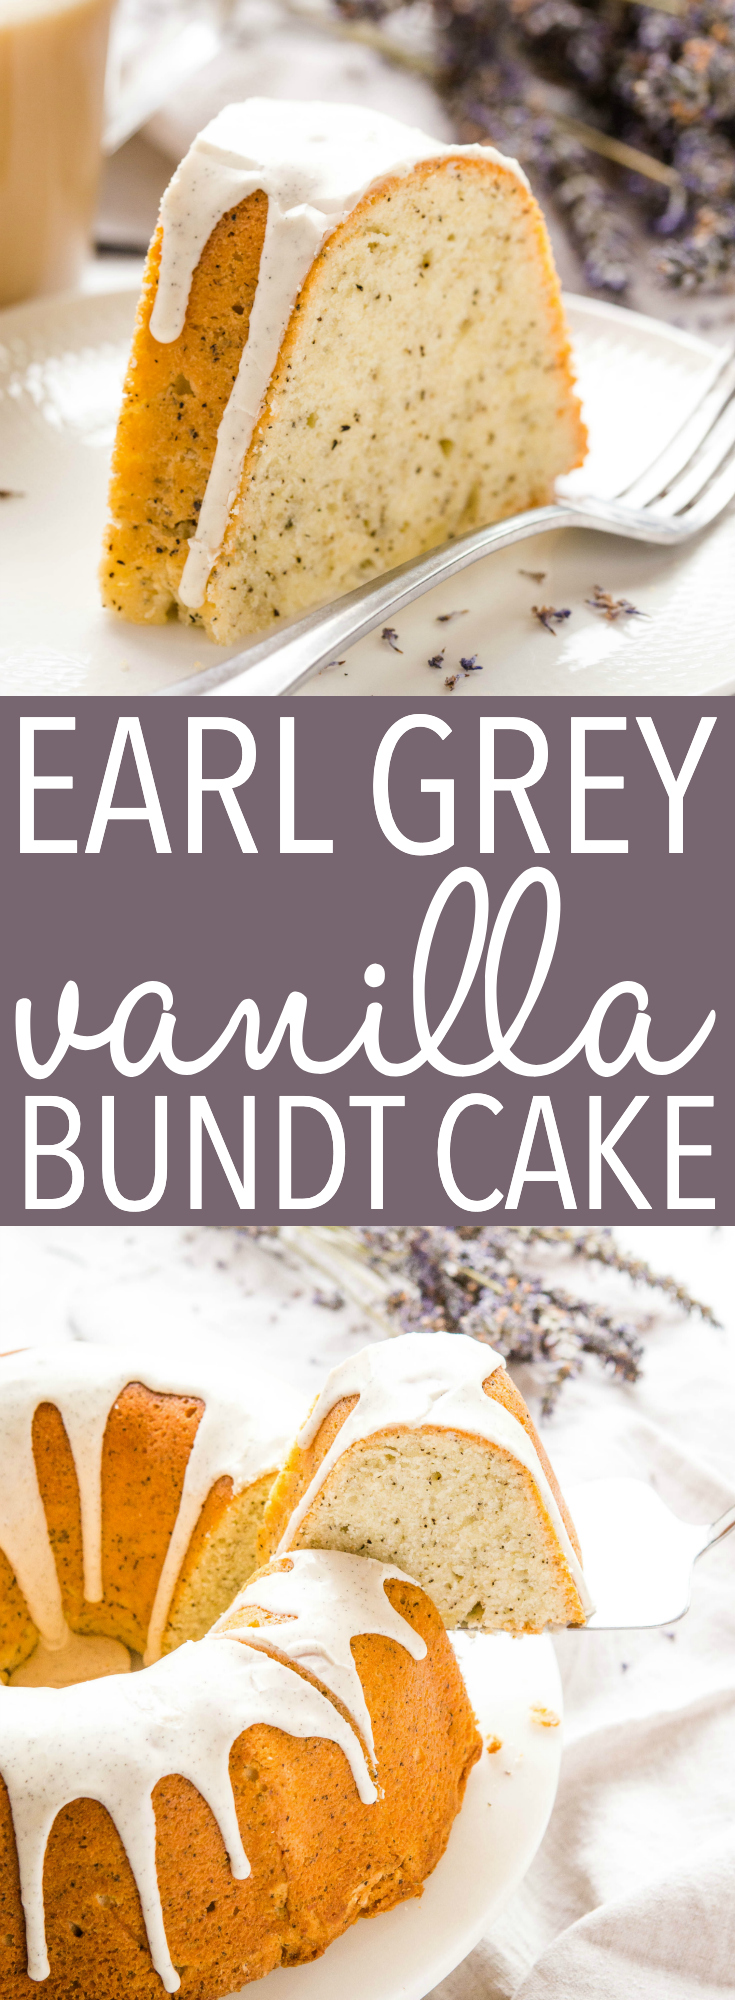 This Earl Grey Vanilla Bundt Cake with Vanilla Bean Glaze is the perfect simple cake for tea-lovers! Easy to make, beautiful presentation, and perfectly tender, moist and sweet! Recipe from thebusybaker.ca! #tea #cake #earlgrey #bundtcake #easycake #baking #easy #recipe #dessert #baker #vanilla #vanillabean #glaze #howtobake via @busybakerblog